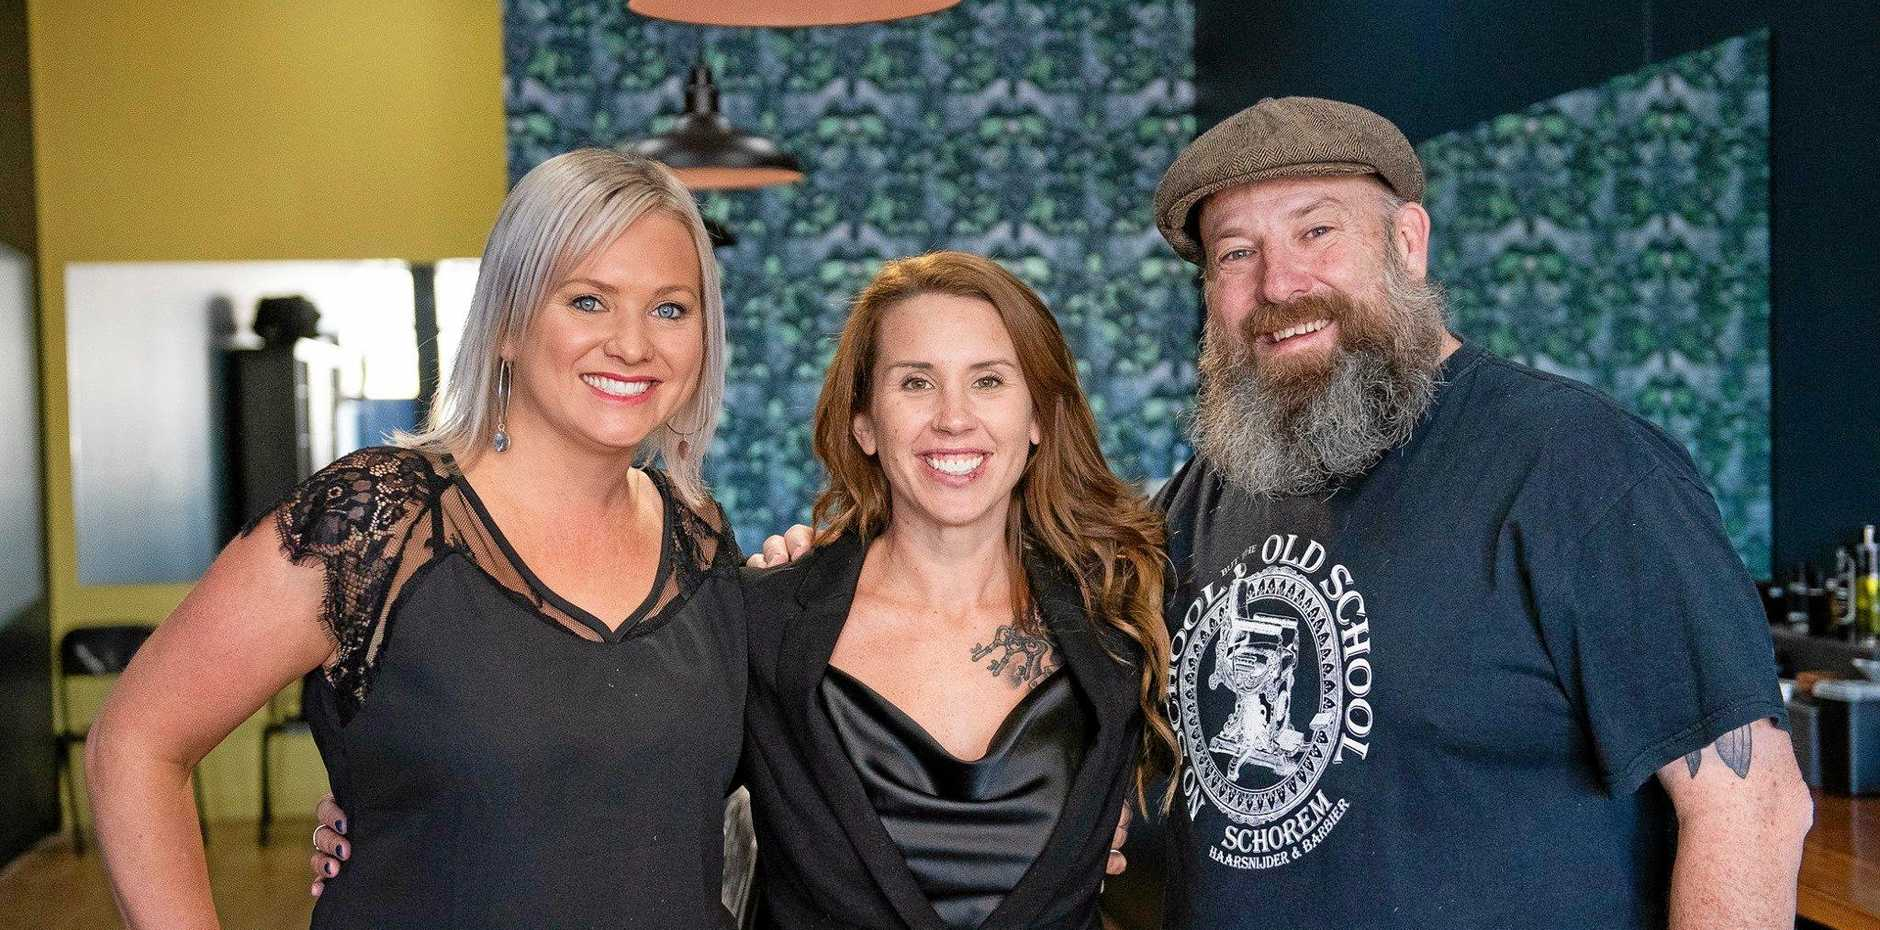 NOW OPEN: Grace Batten, Renee Houston and Damian Roche from Houston and Co Barber Shop.